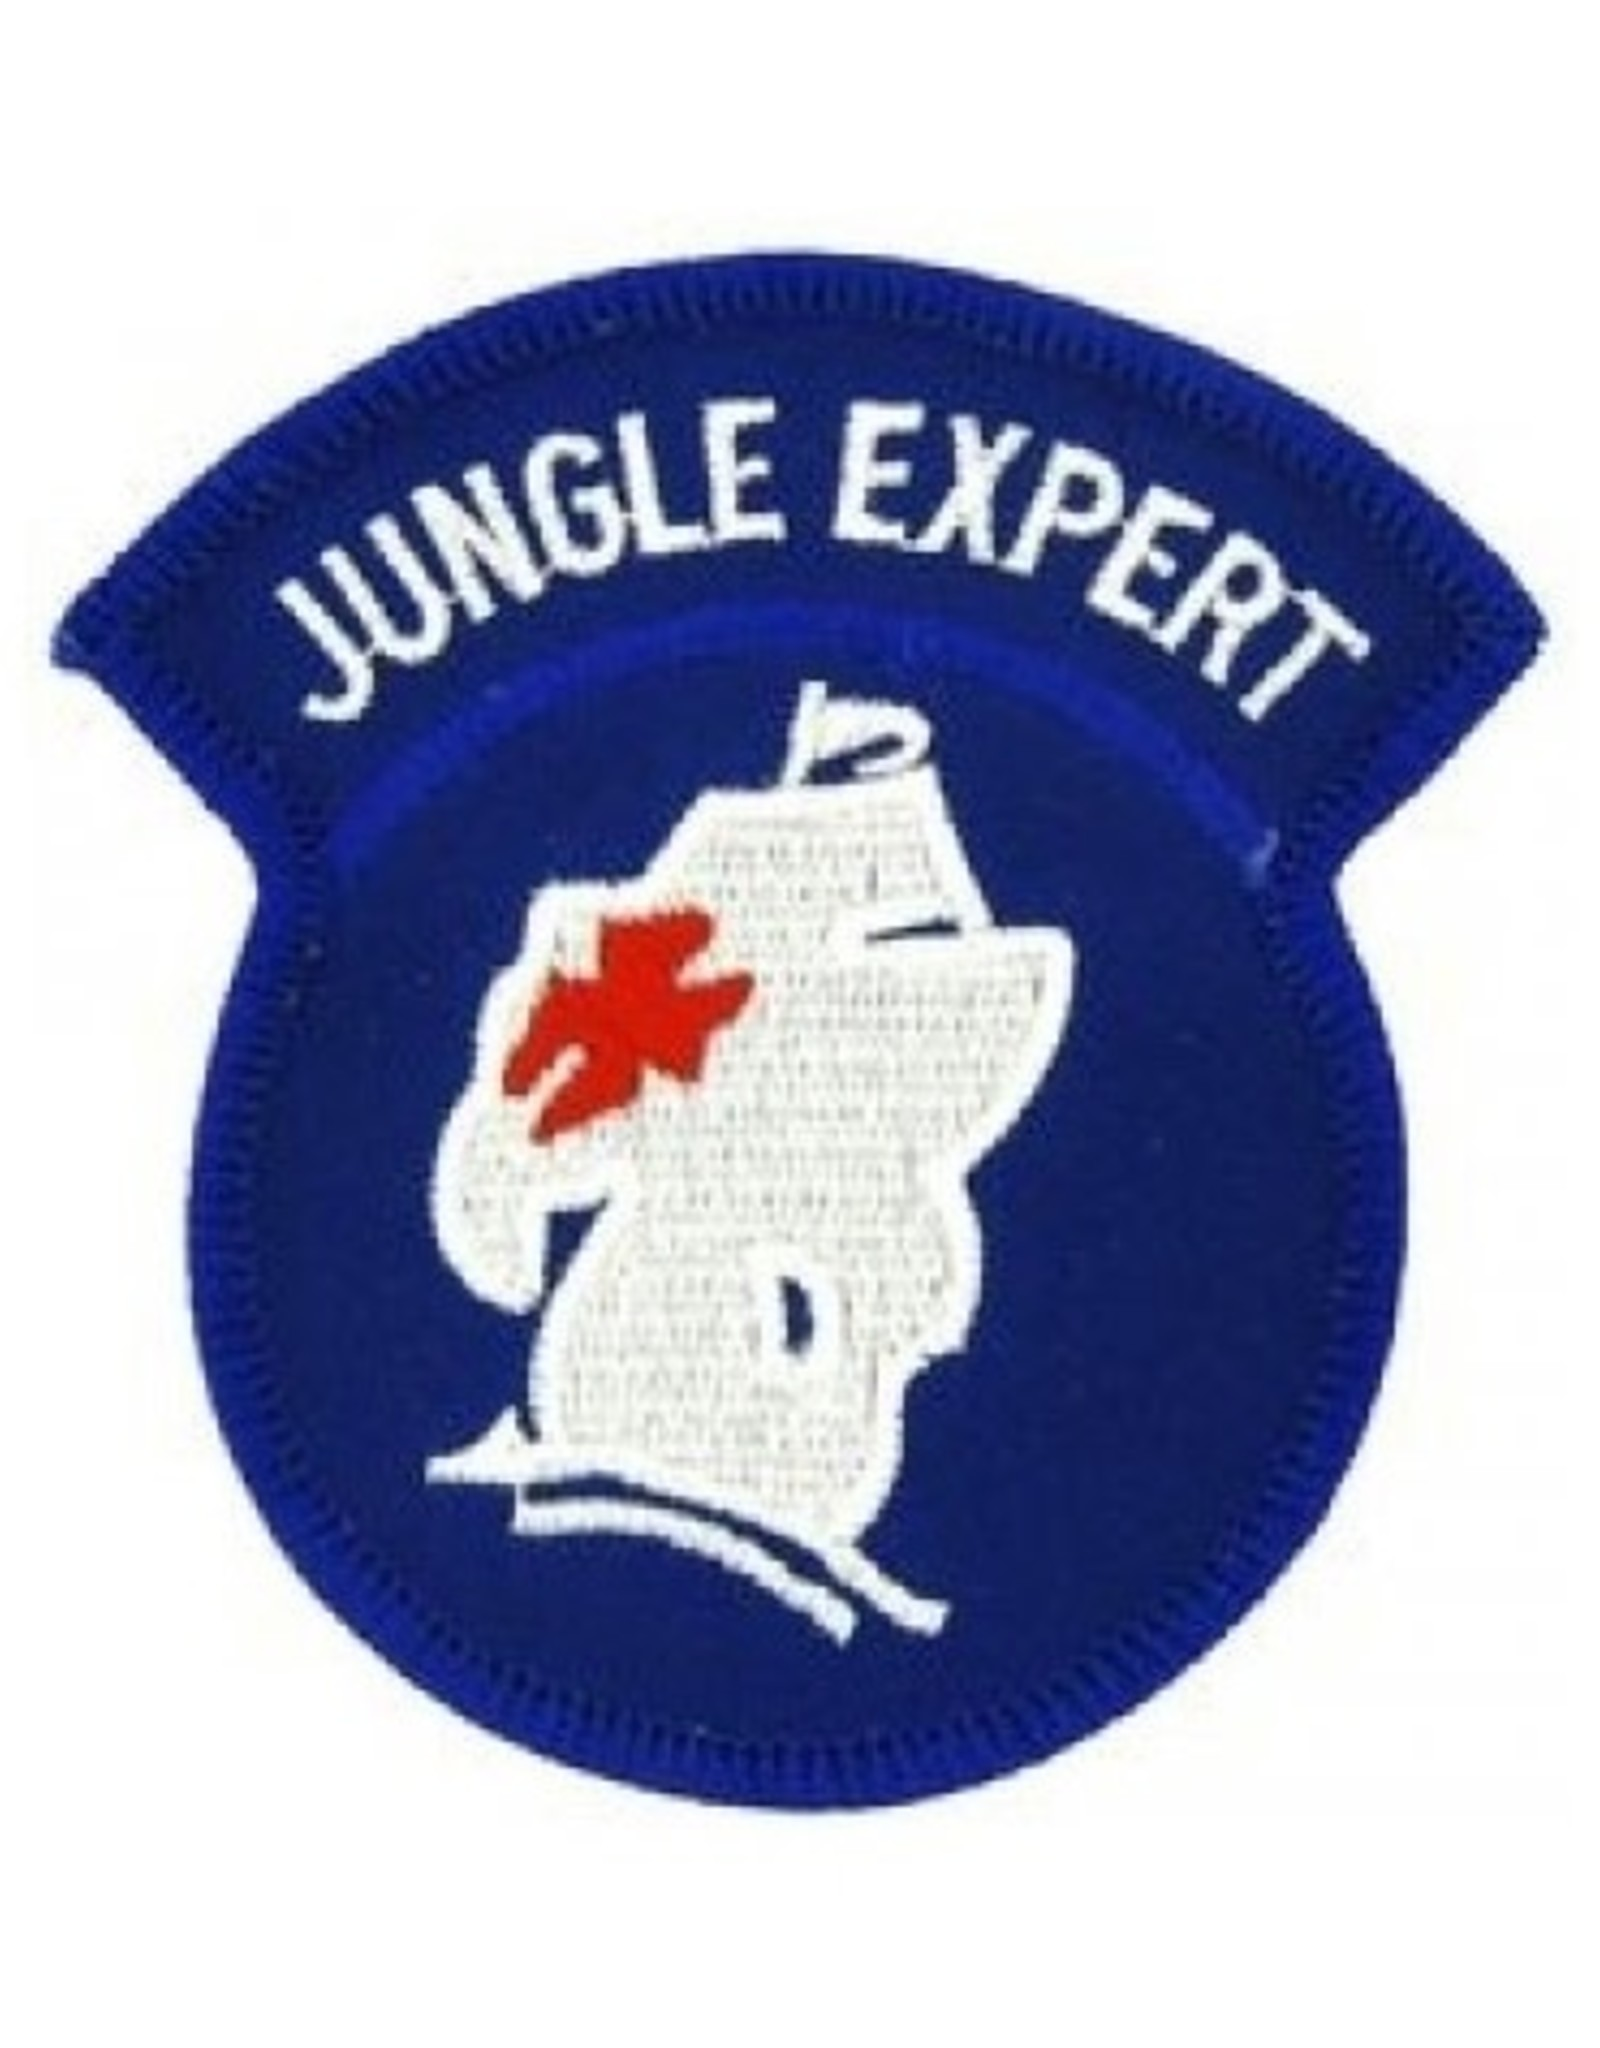 """MidMil Embroidered Army Jungle Expert Emblem Patch 2.8"""" wide x 3"""" high"""